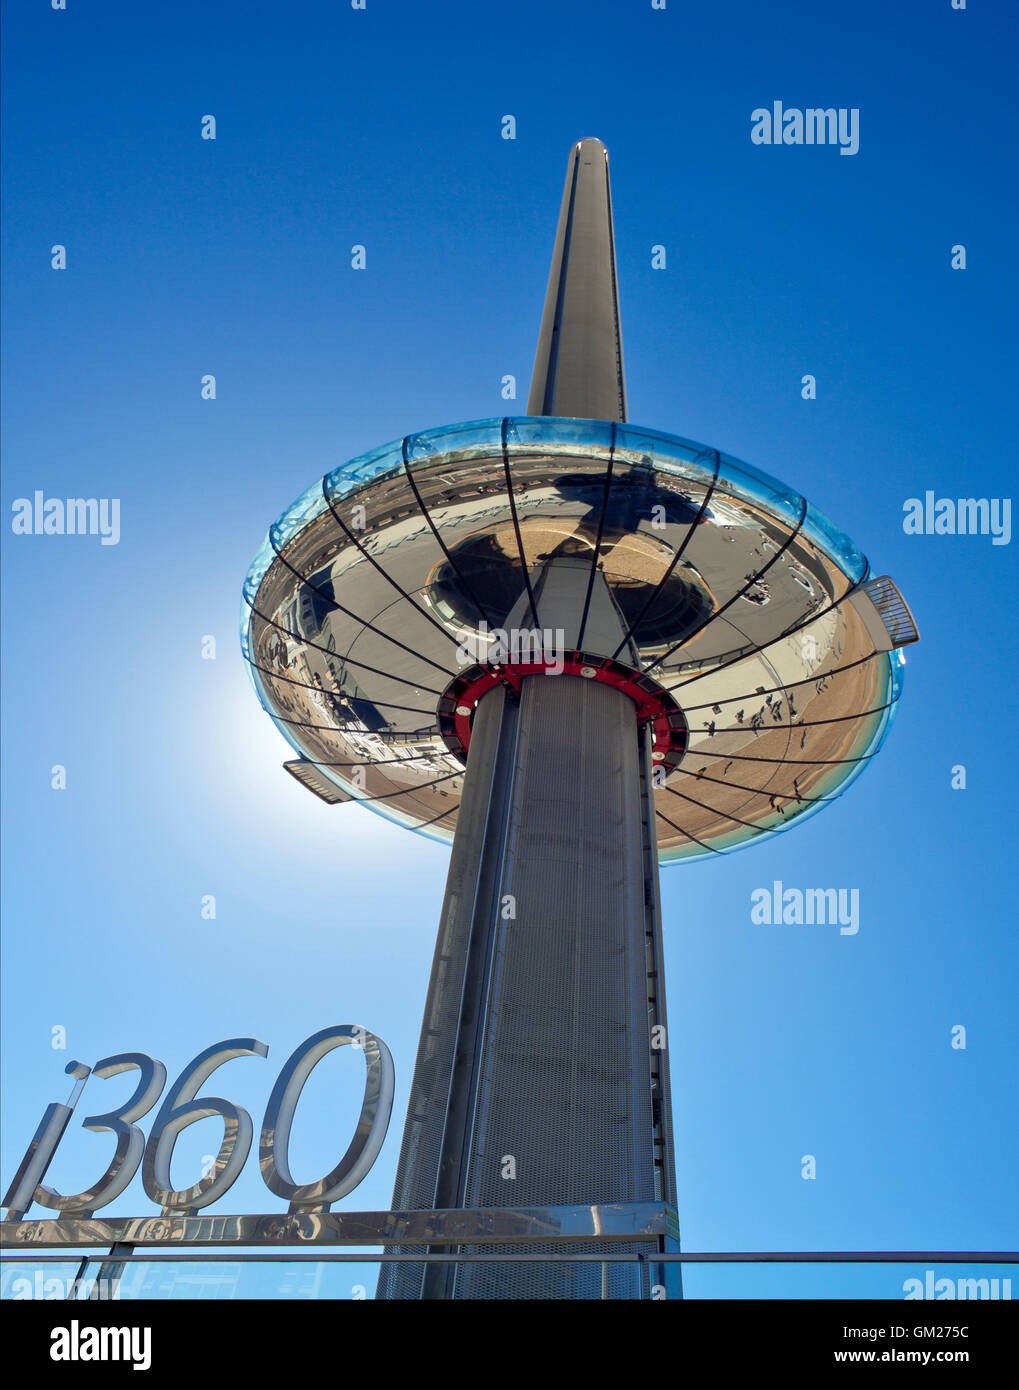 i360 observation tower Brighton. - Stock Image